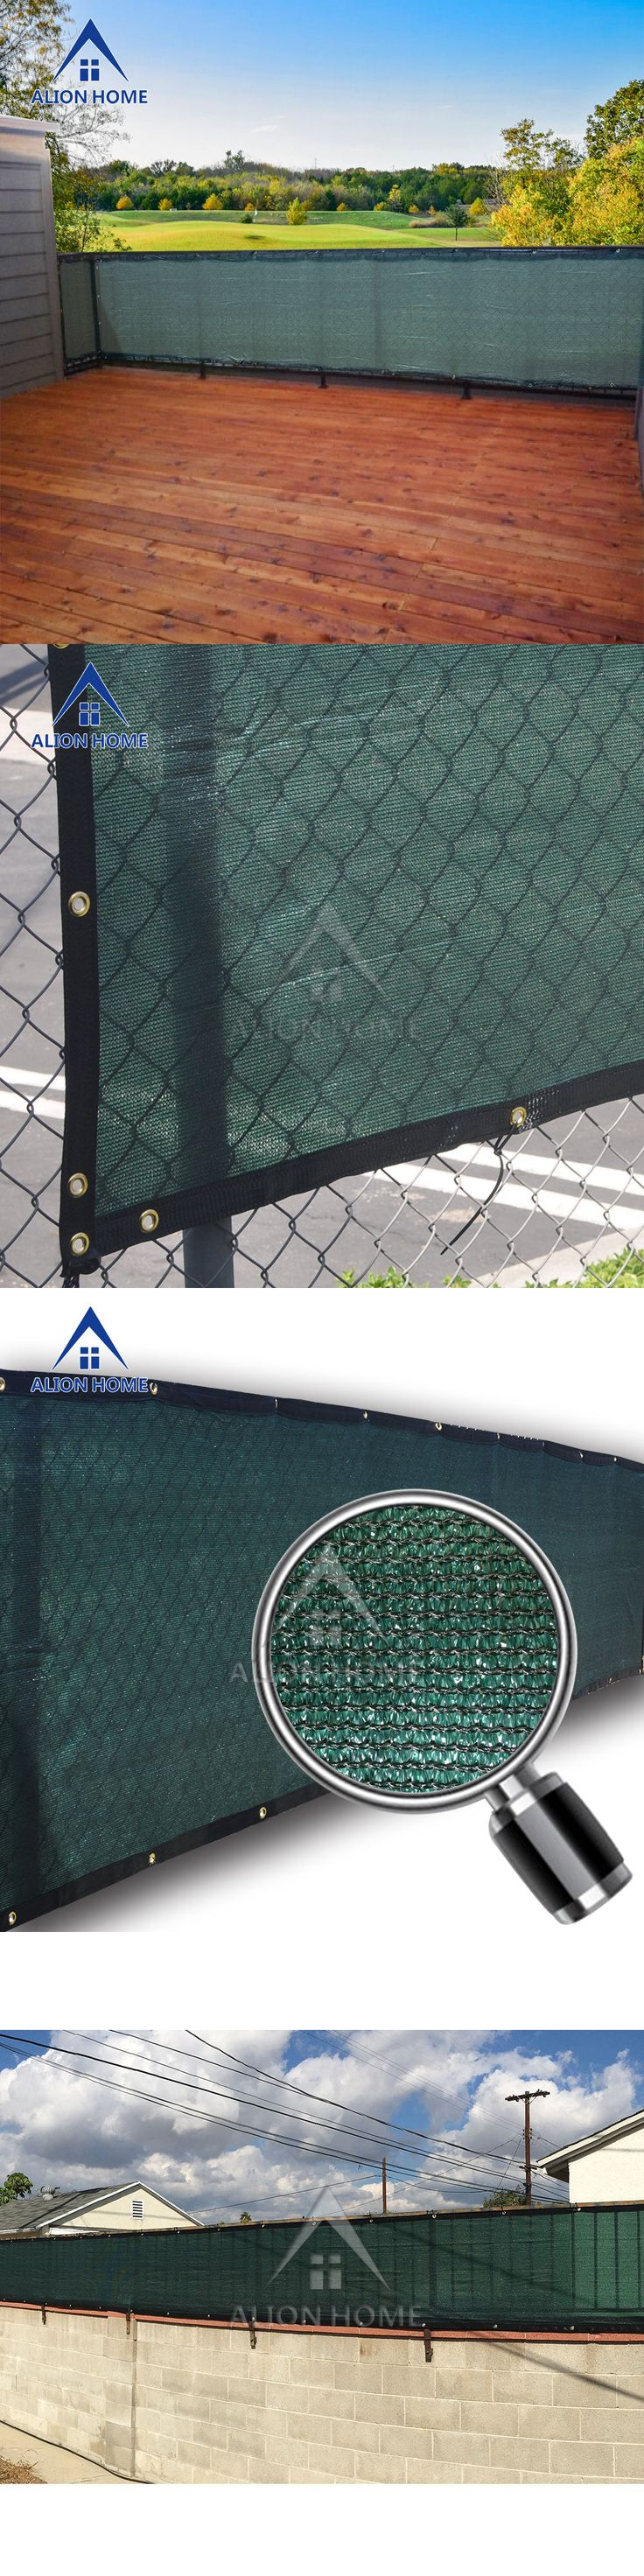 Privacy screens windscreens 180991 alion home custom sized patio fence privacy screen